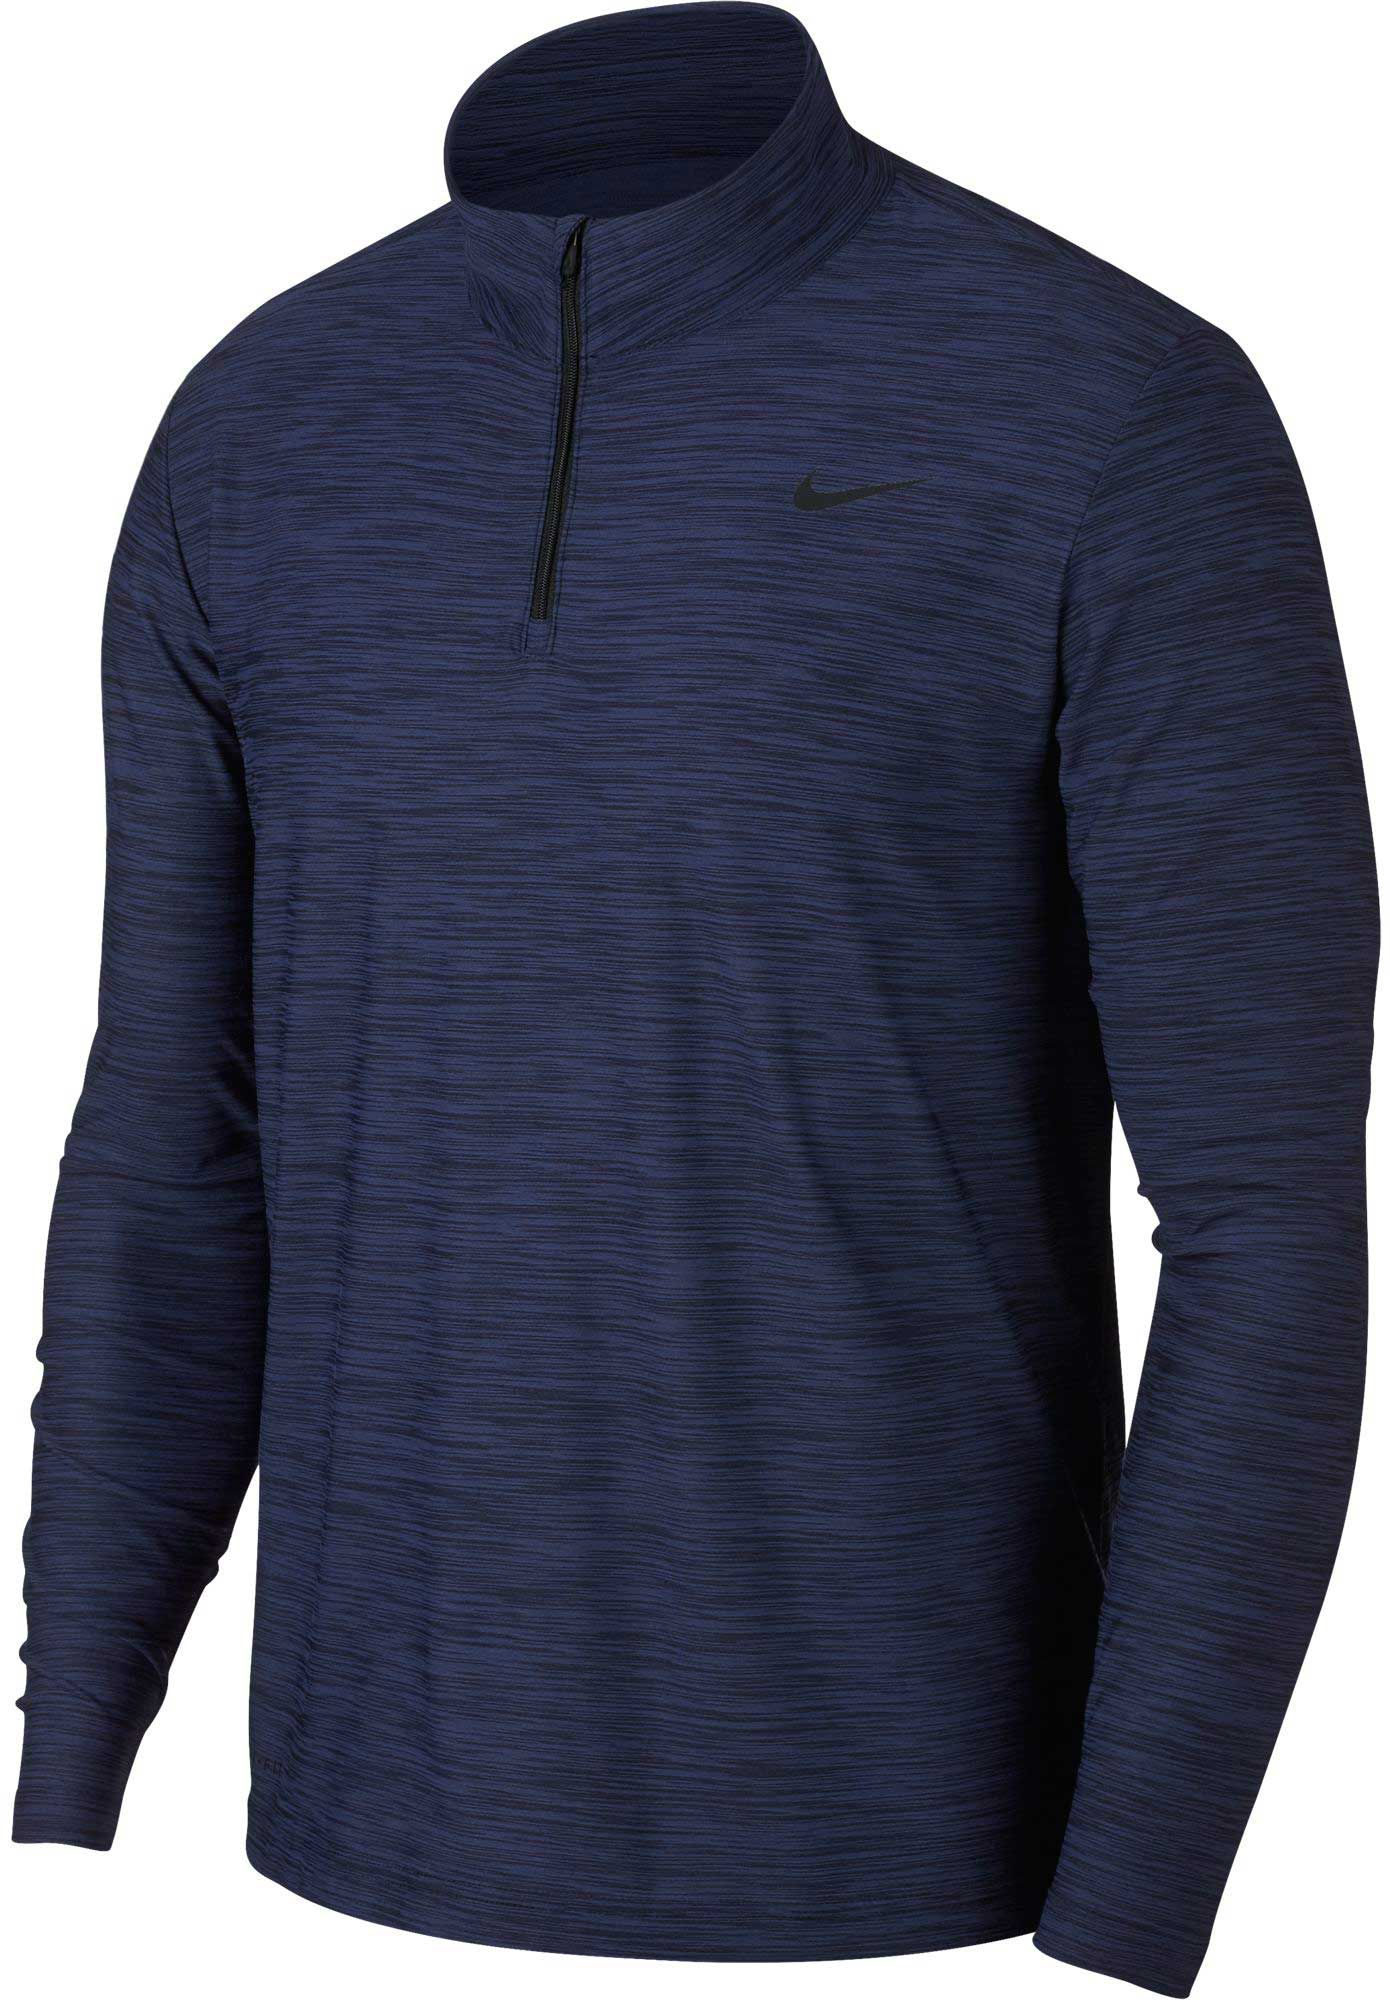 Nike Men's Breathe Dry Quarter Zip Long Sleeve Shirt | DICK'S ...